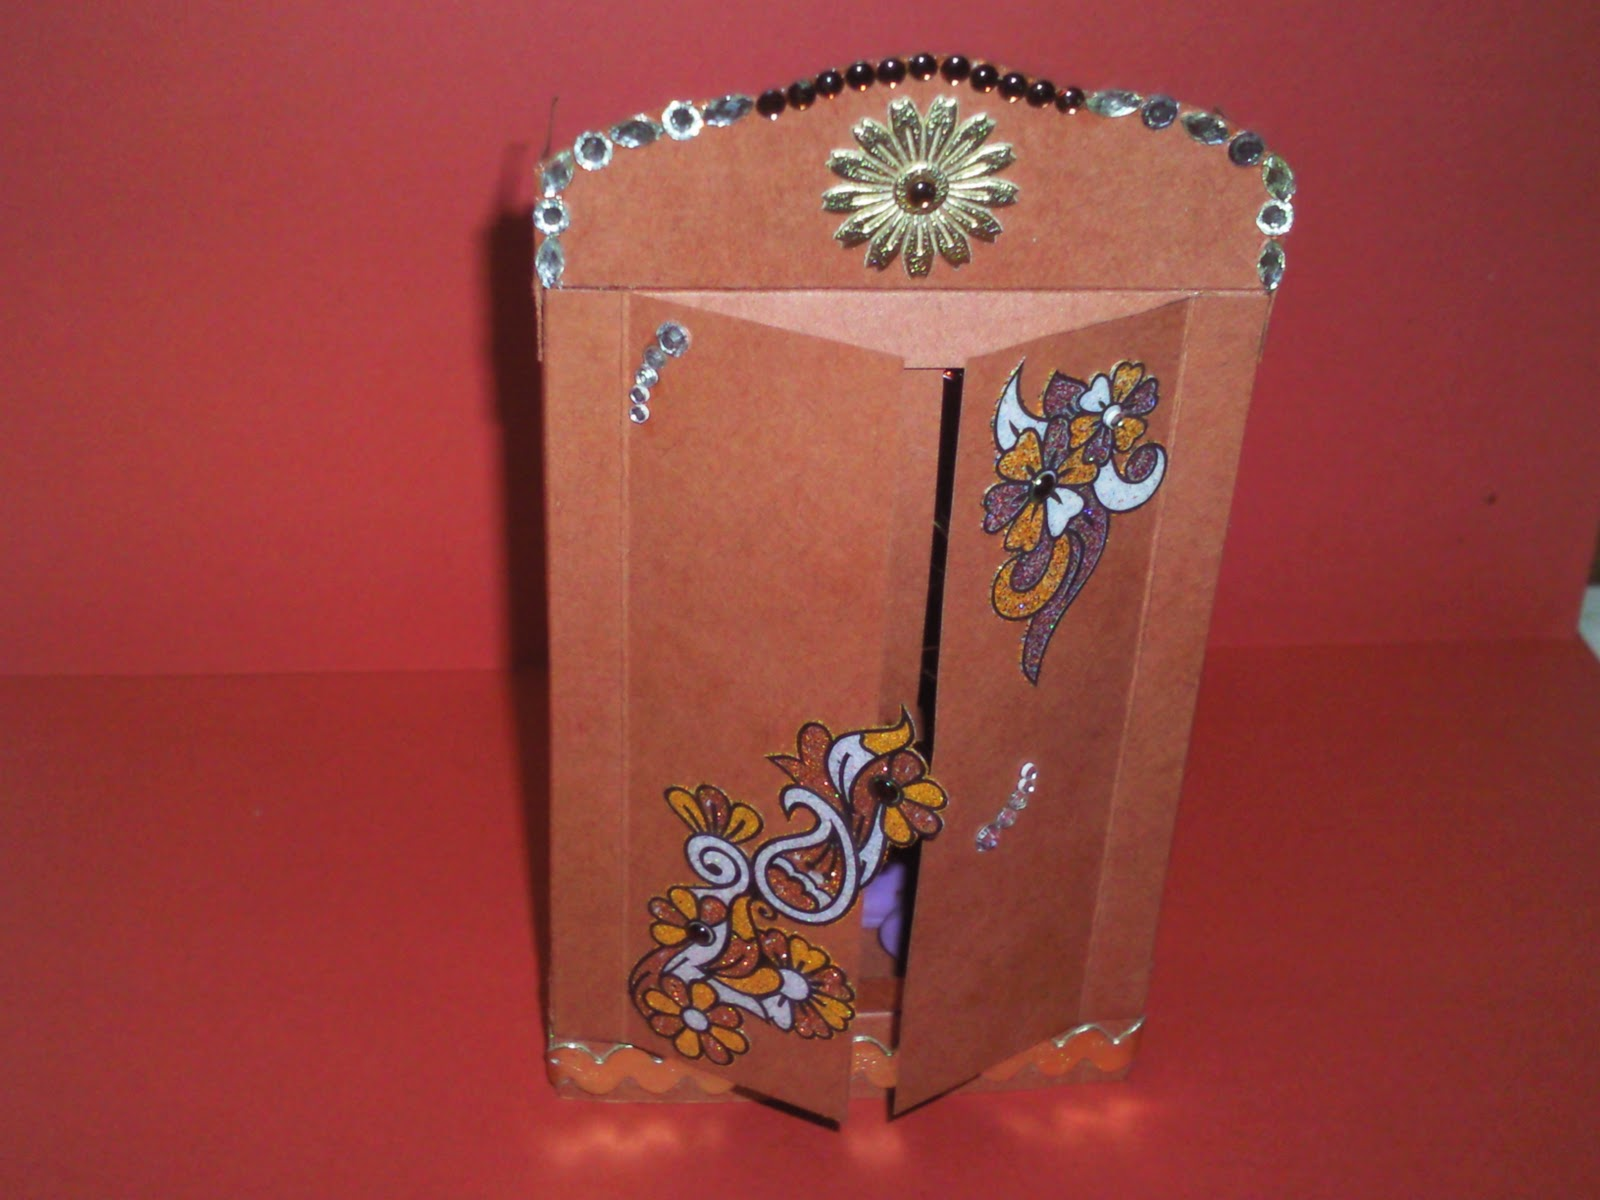 CRAFTIVITY BIRDSHandmade ArtCraftsCards and 3D projects. 1600 x 1200.New Year Cards Handmade